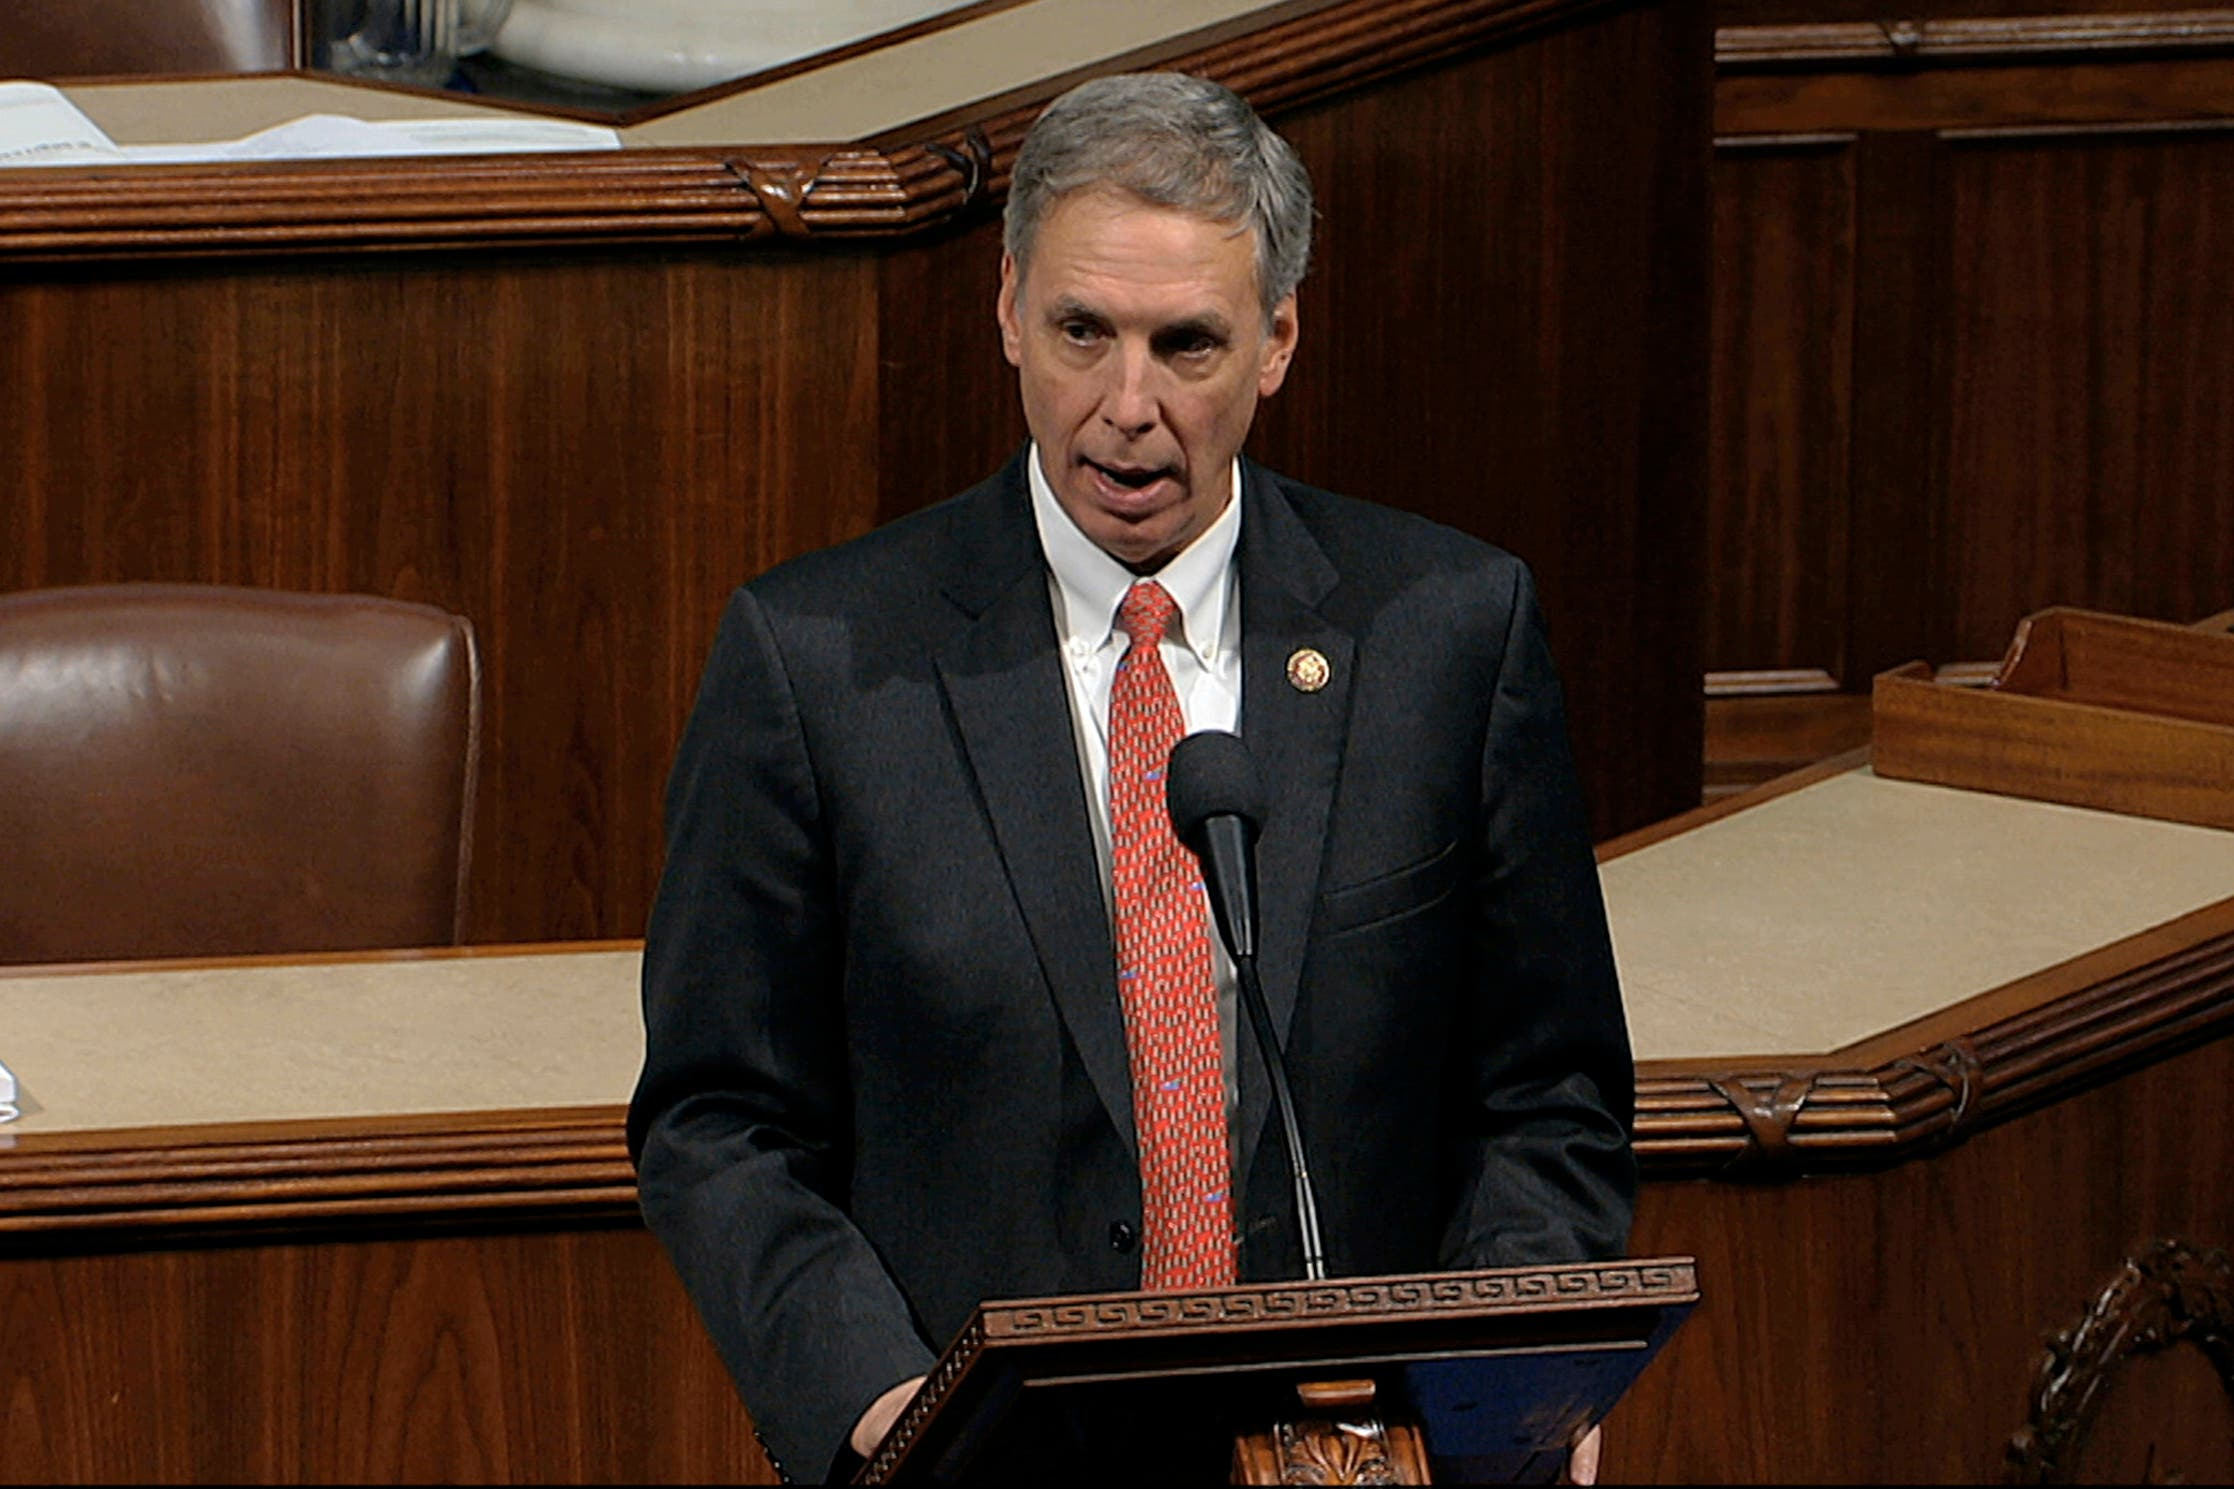 File photo, taken from video, Rep. Tom Rice, R-S.C., speaks as the House of Representatives debates the articles of impeachment against President Donald Trump at the Capitol in Washington. (File photo: AP)